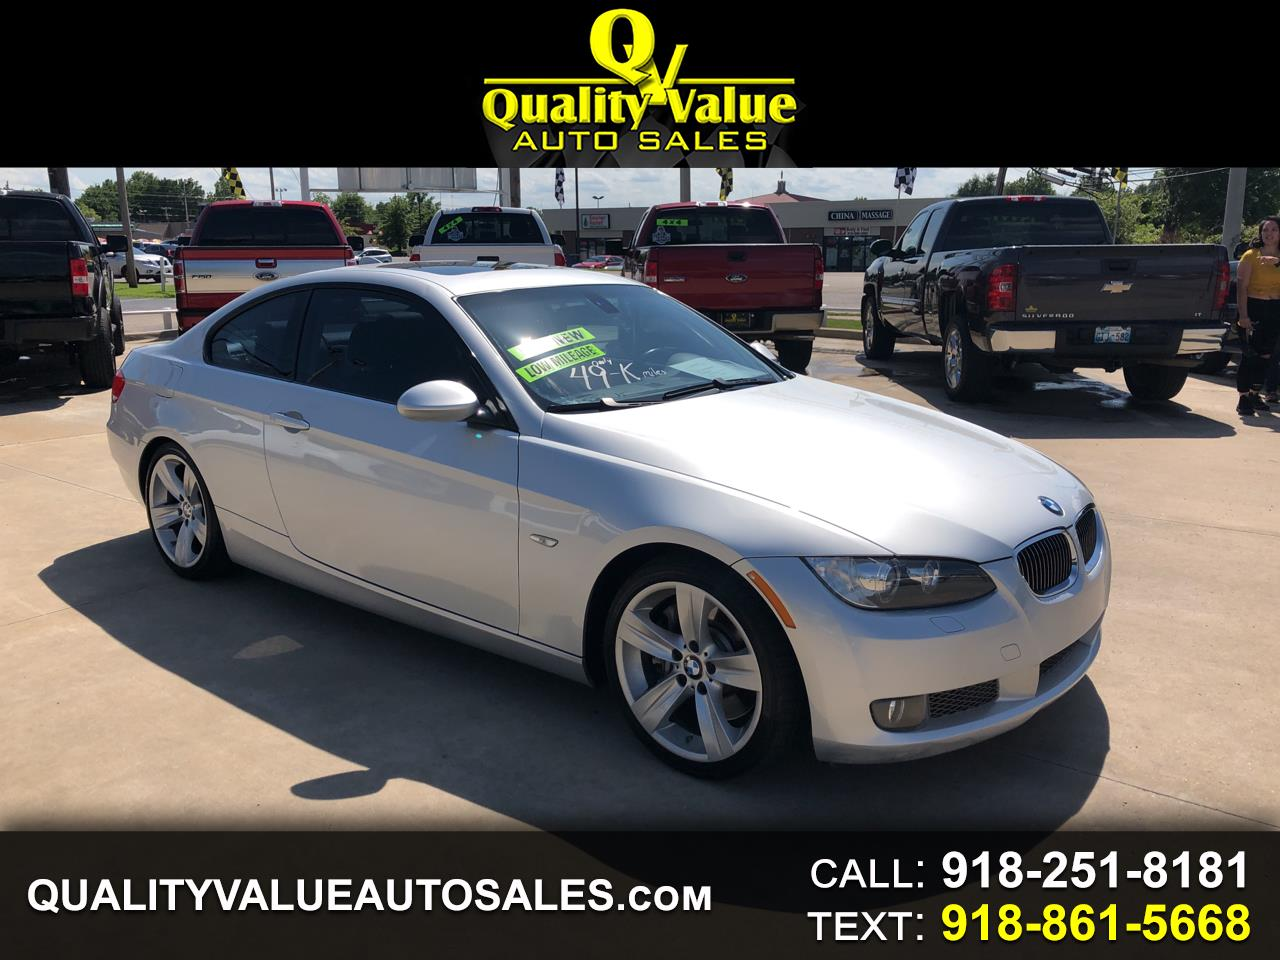 2009 BMW 3-Series 335i Coupe